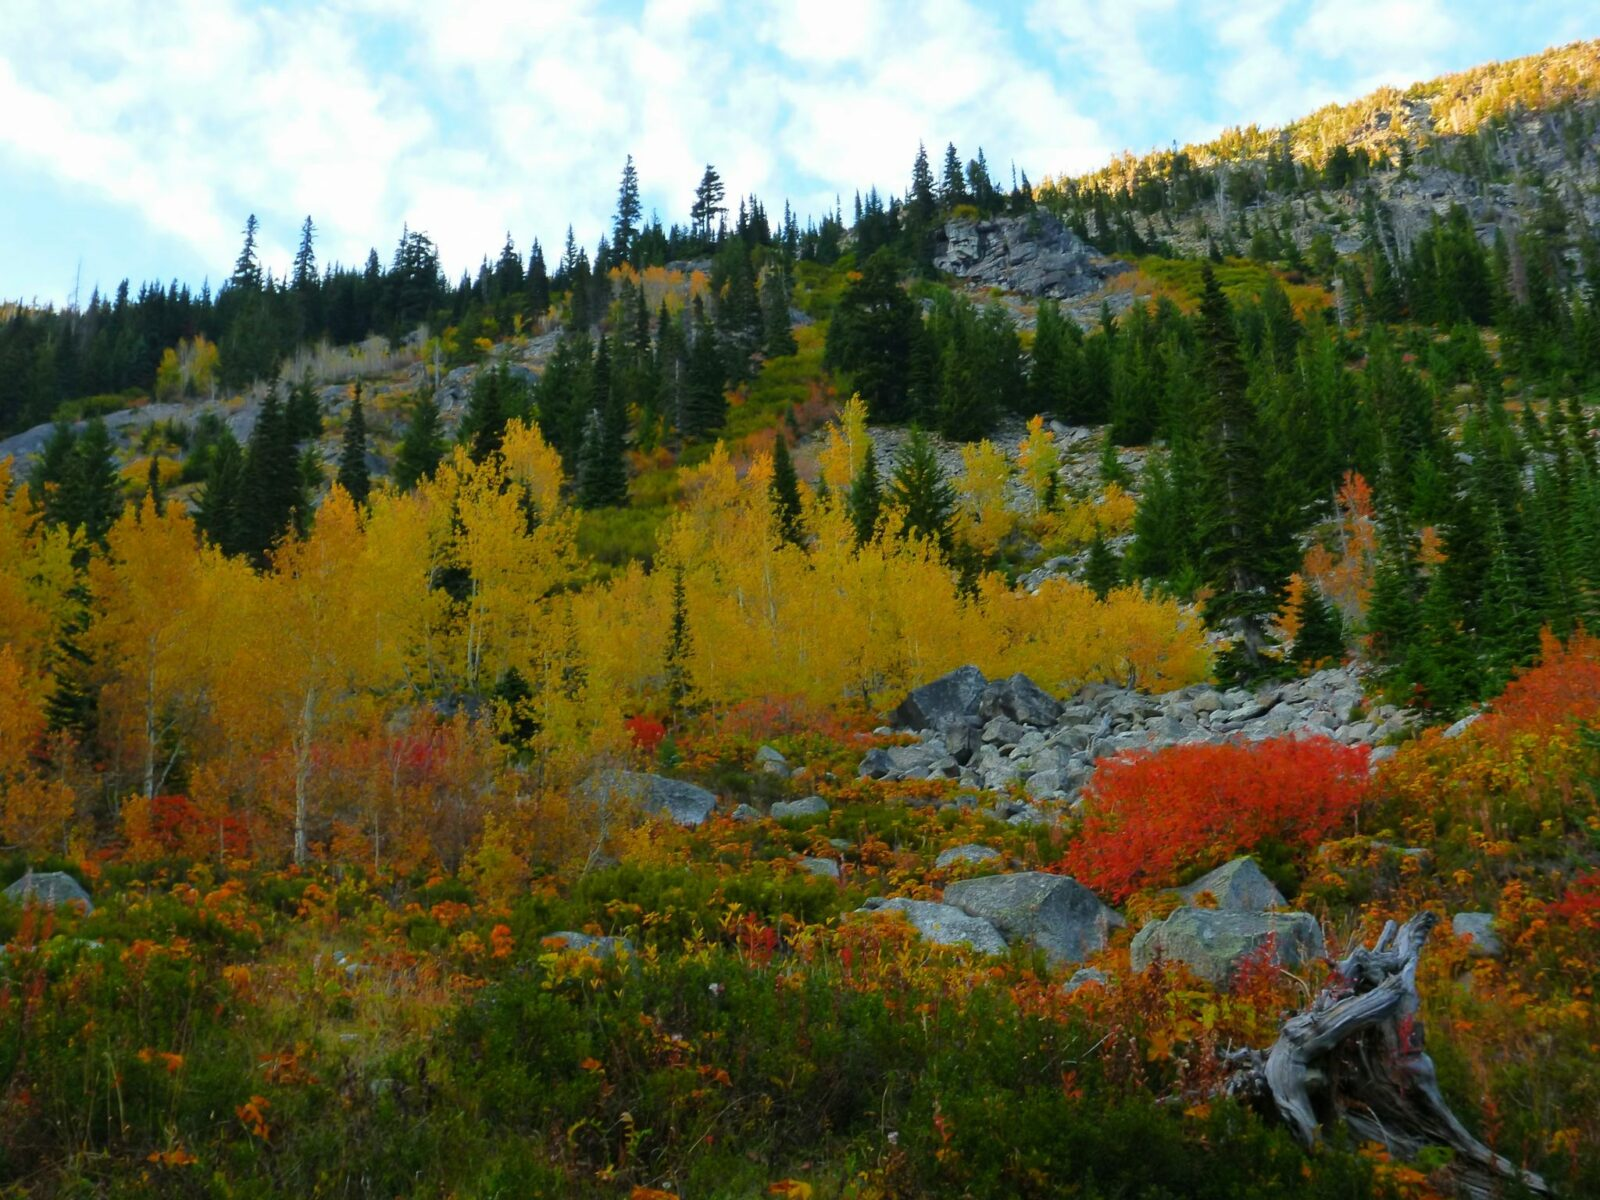 Red, yellow and orange bushes and trees in fall along the open and rocky section of the Lake Stuart trail